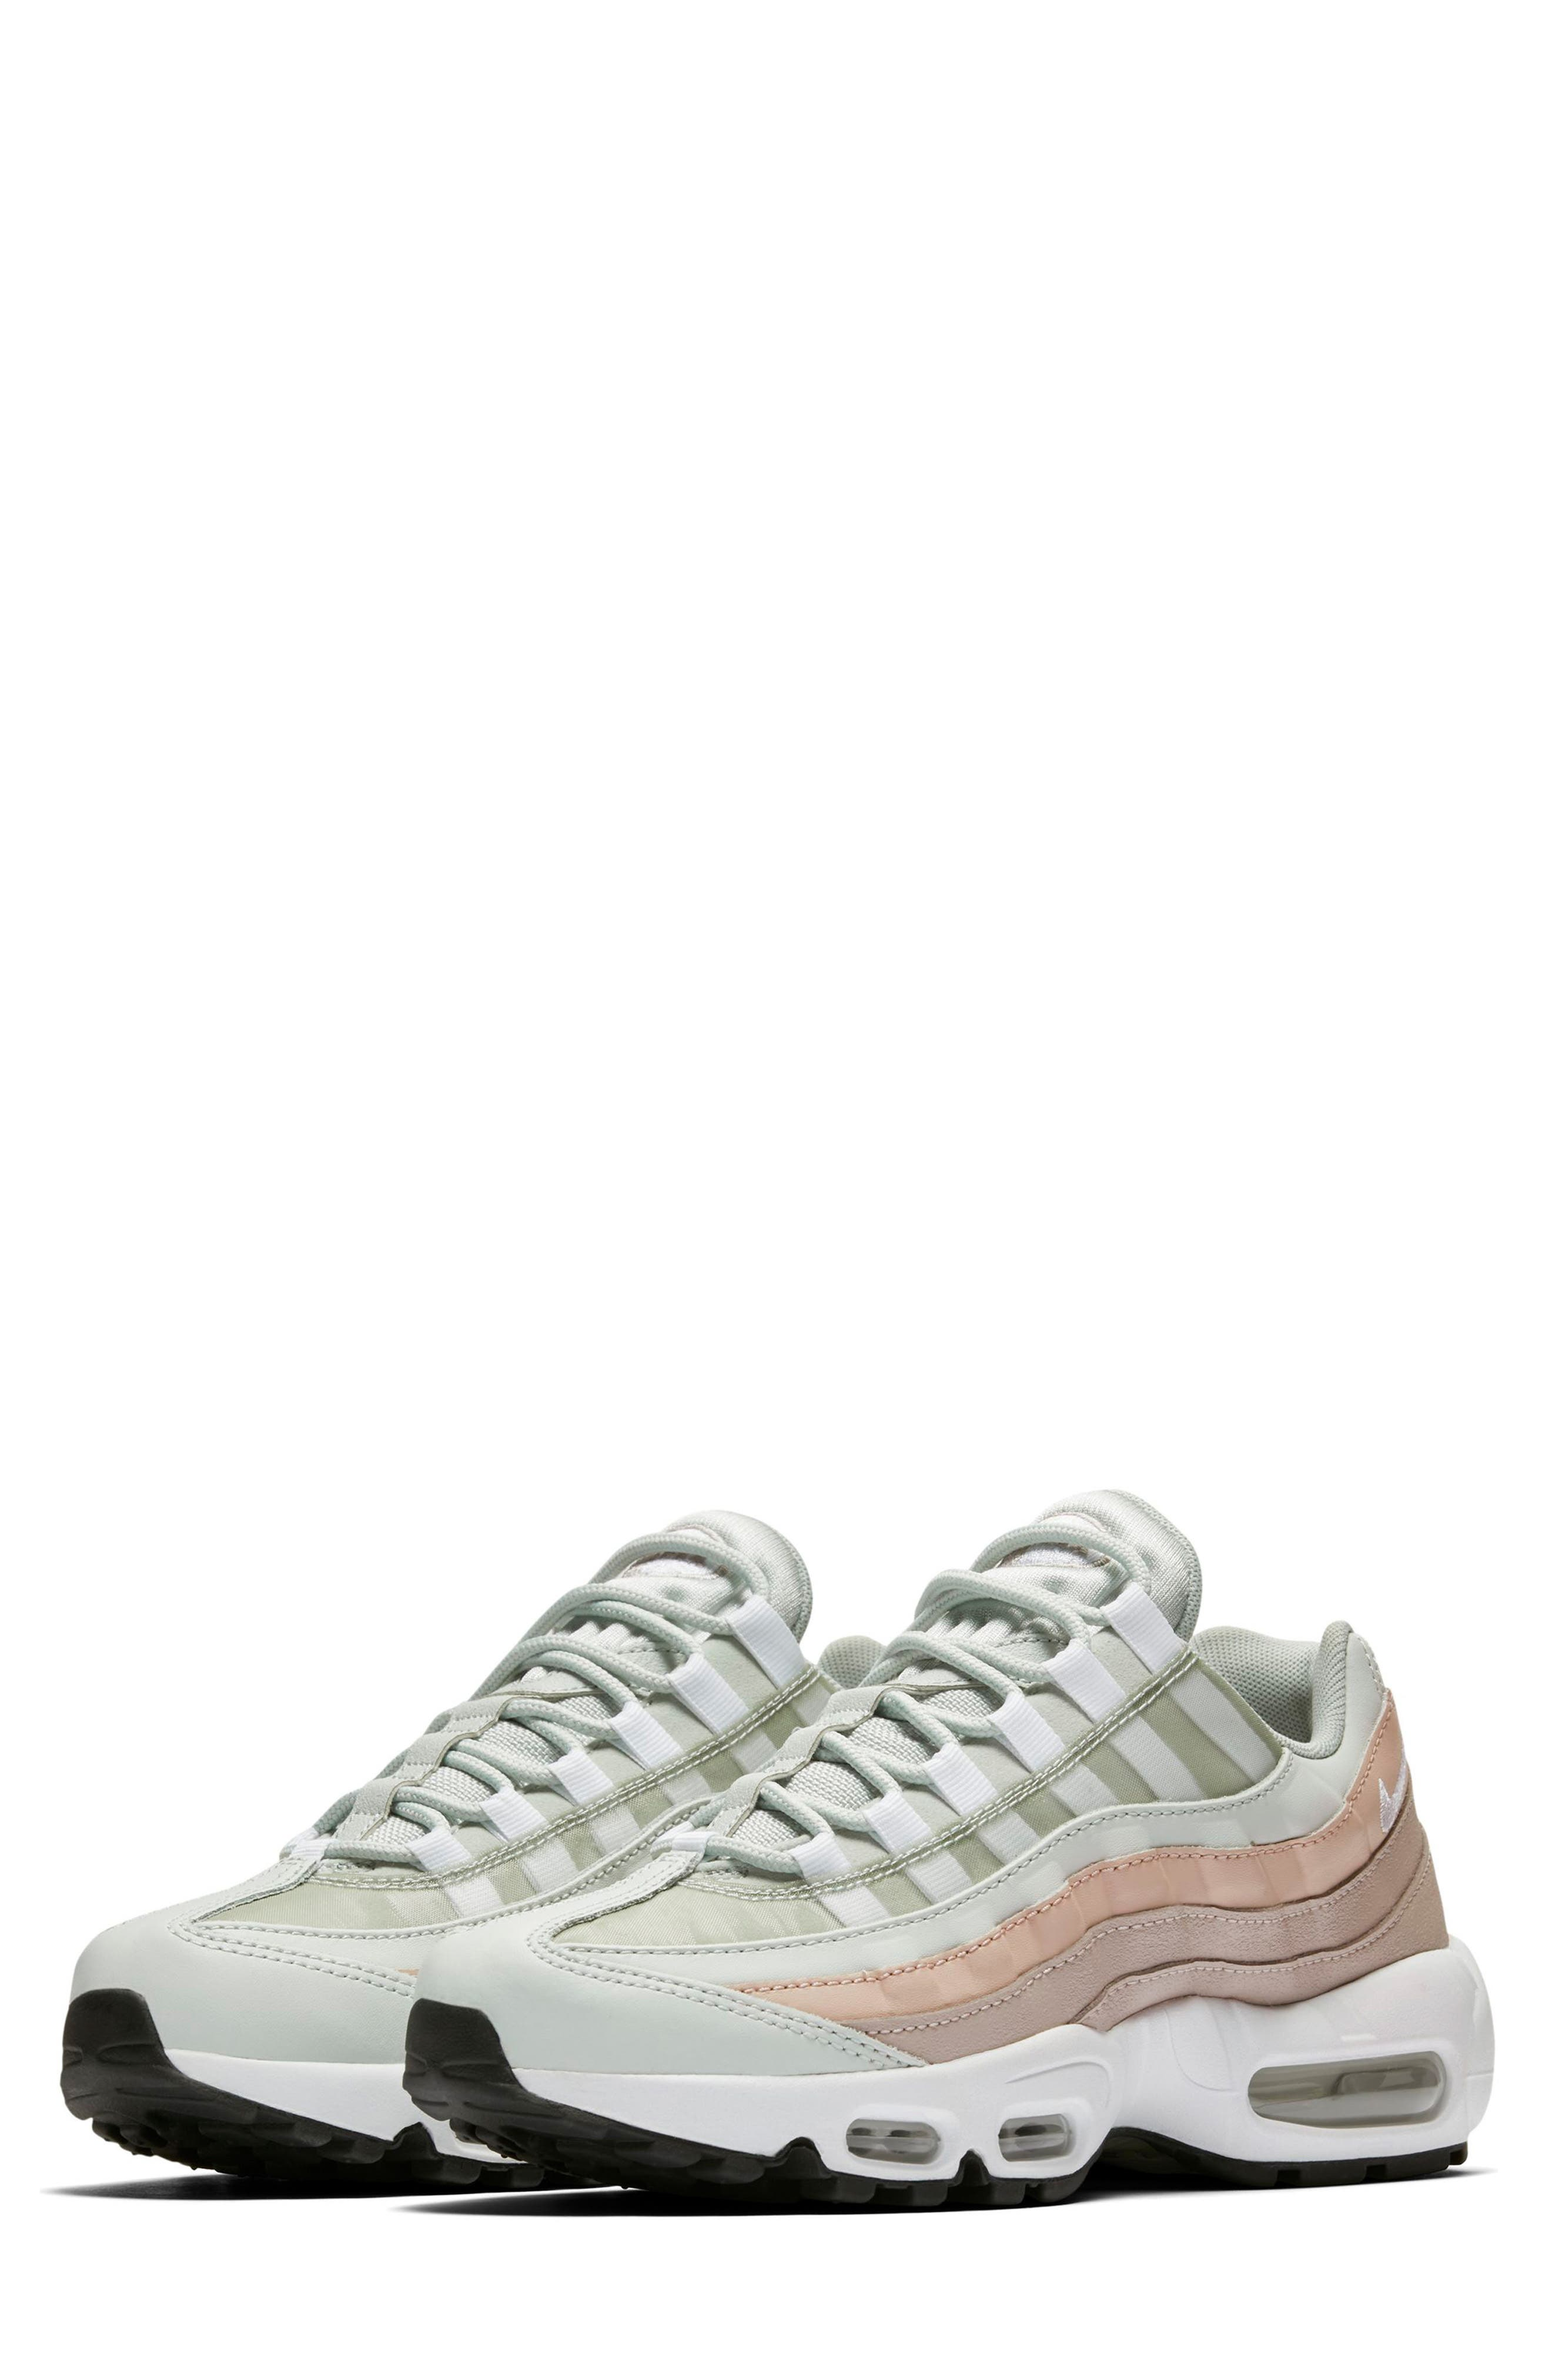 Max Nike Shoes Air Nike Air Nordstrom nUPt4p5xw